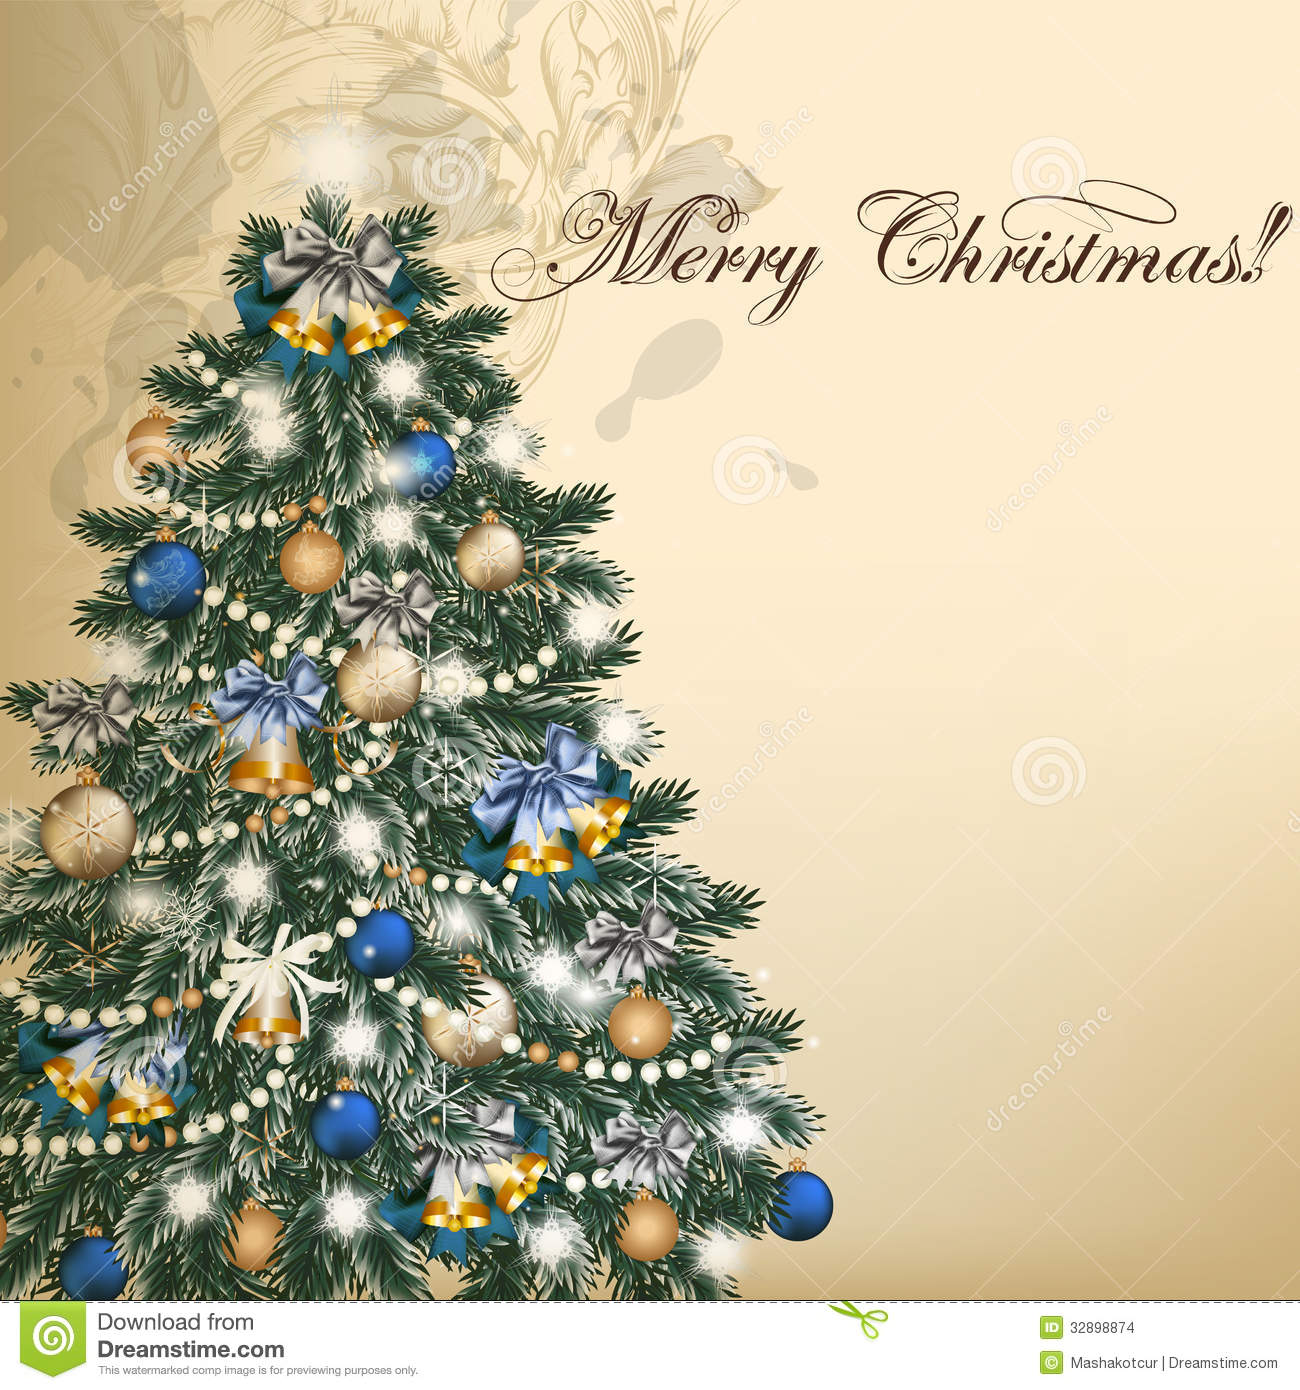 Christmas Vintage Vector Greeting Card With Xmas Tree Stock Images ...